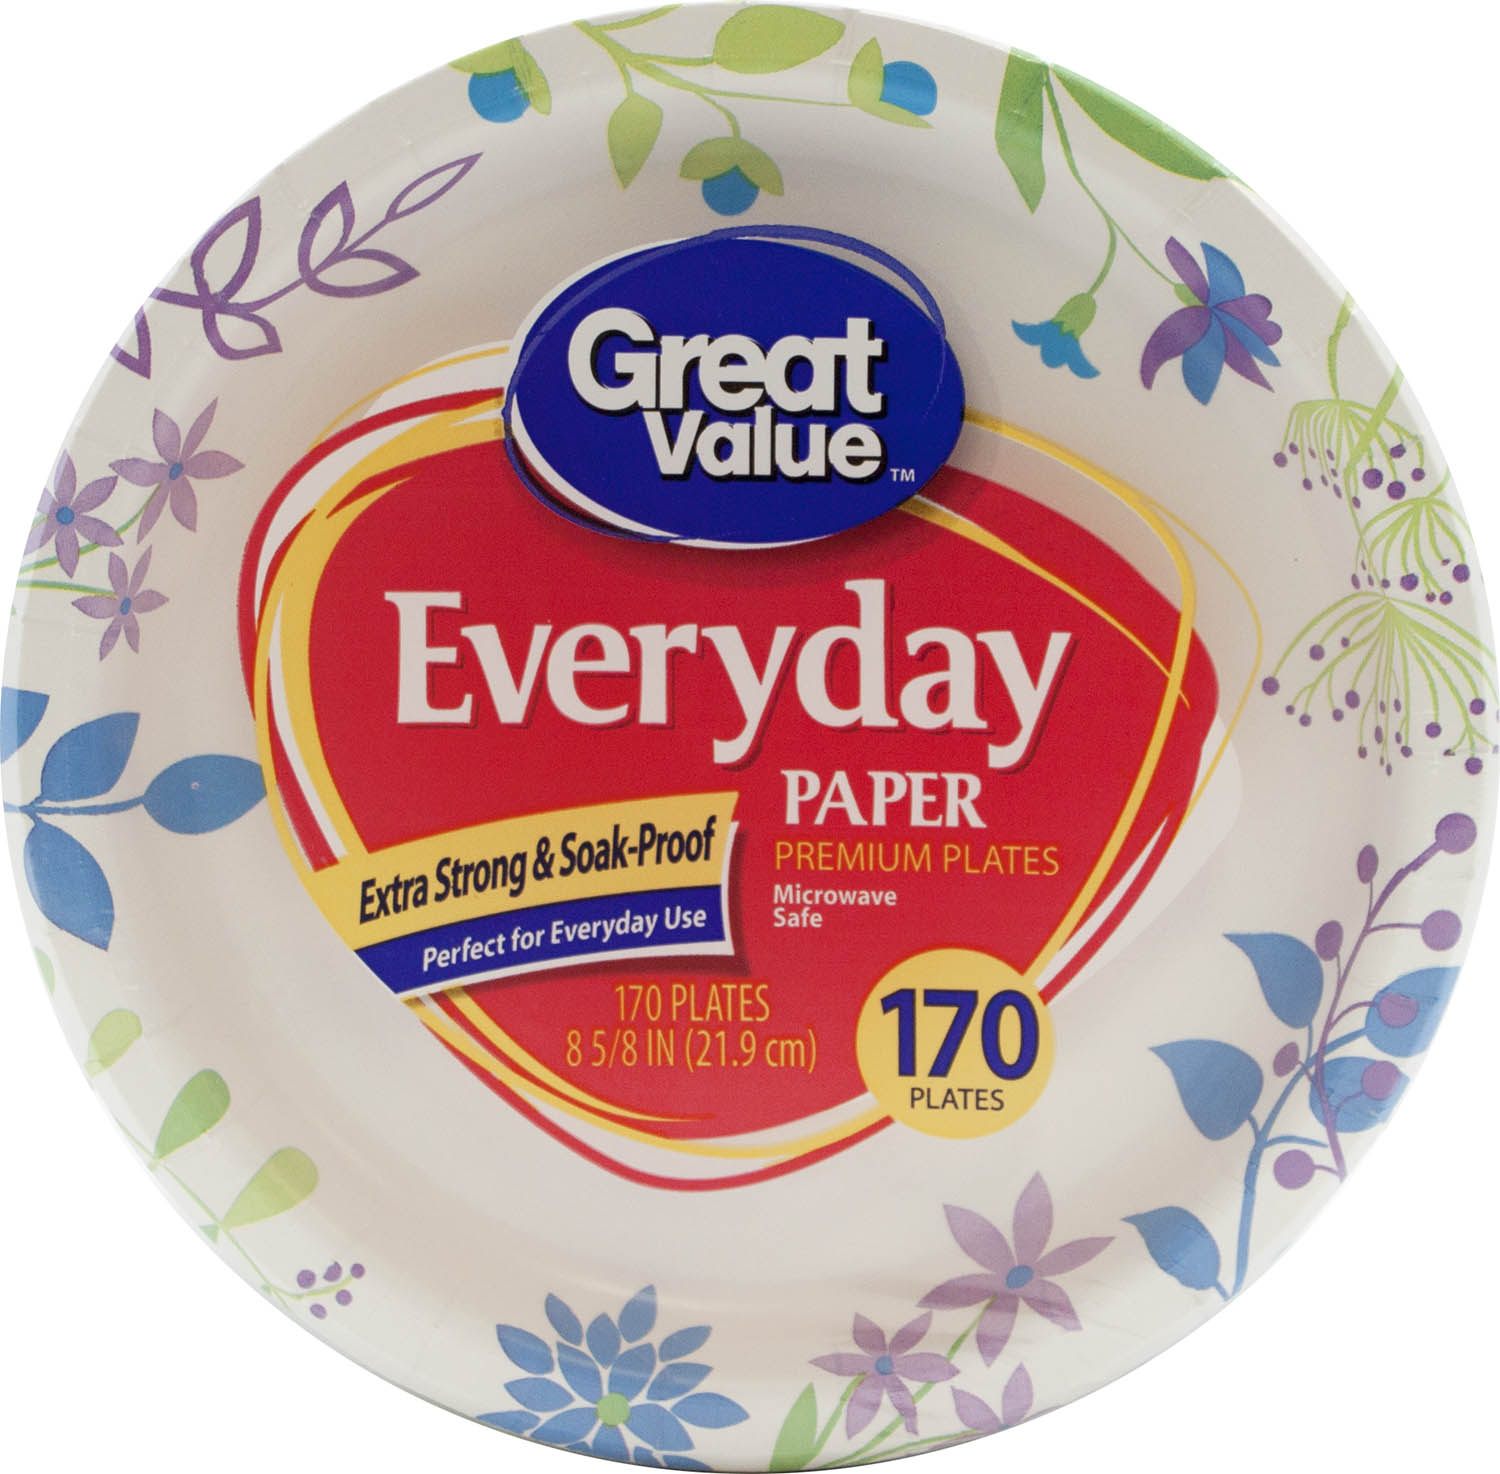 Great Value Everyday Premium Paper Plates, 8 5 8\ by Wal-Mart Stores, Inc.